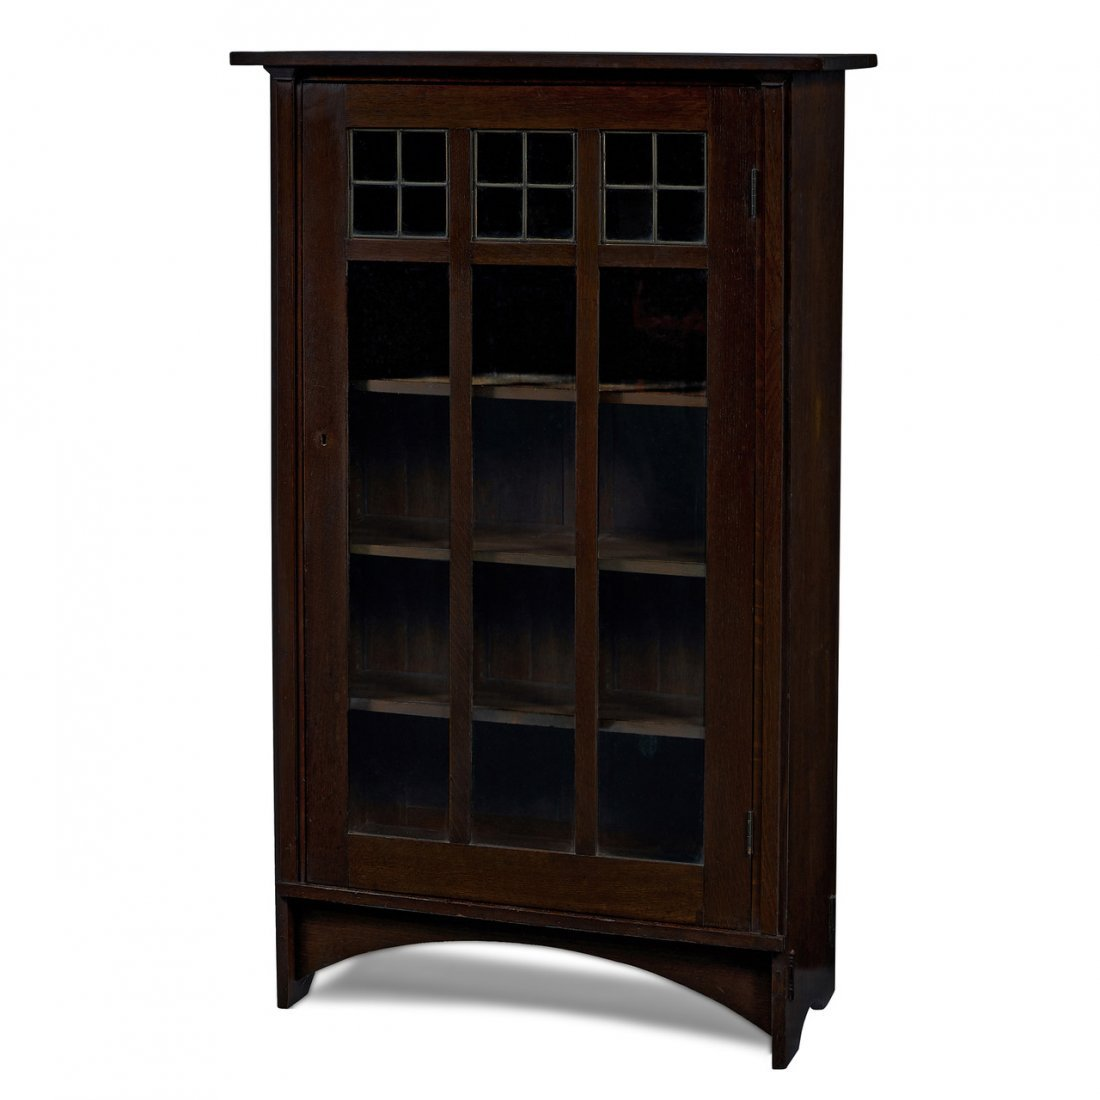 Gustav Stickley (1858-1942) bookcase